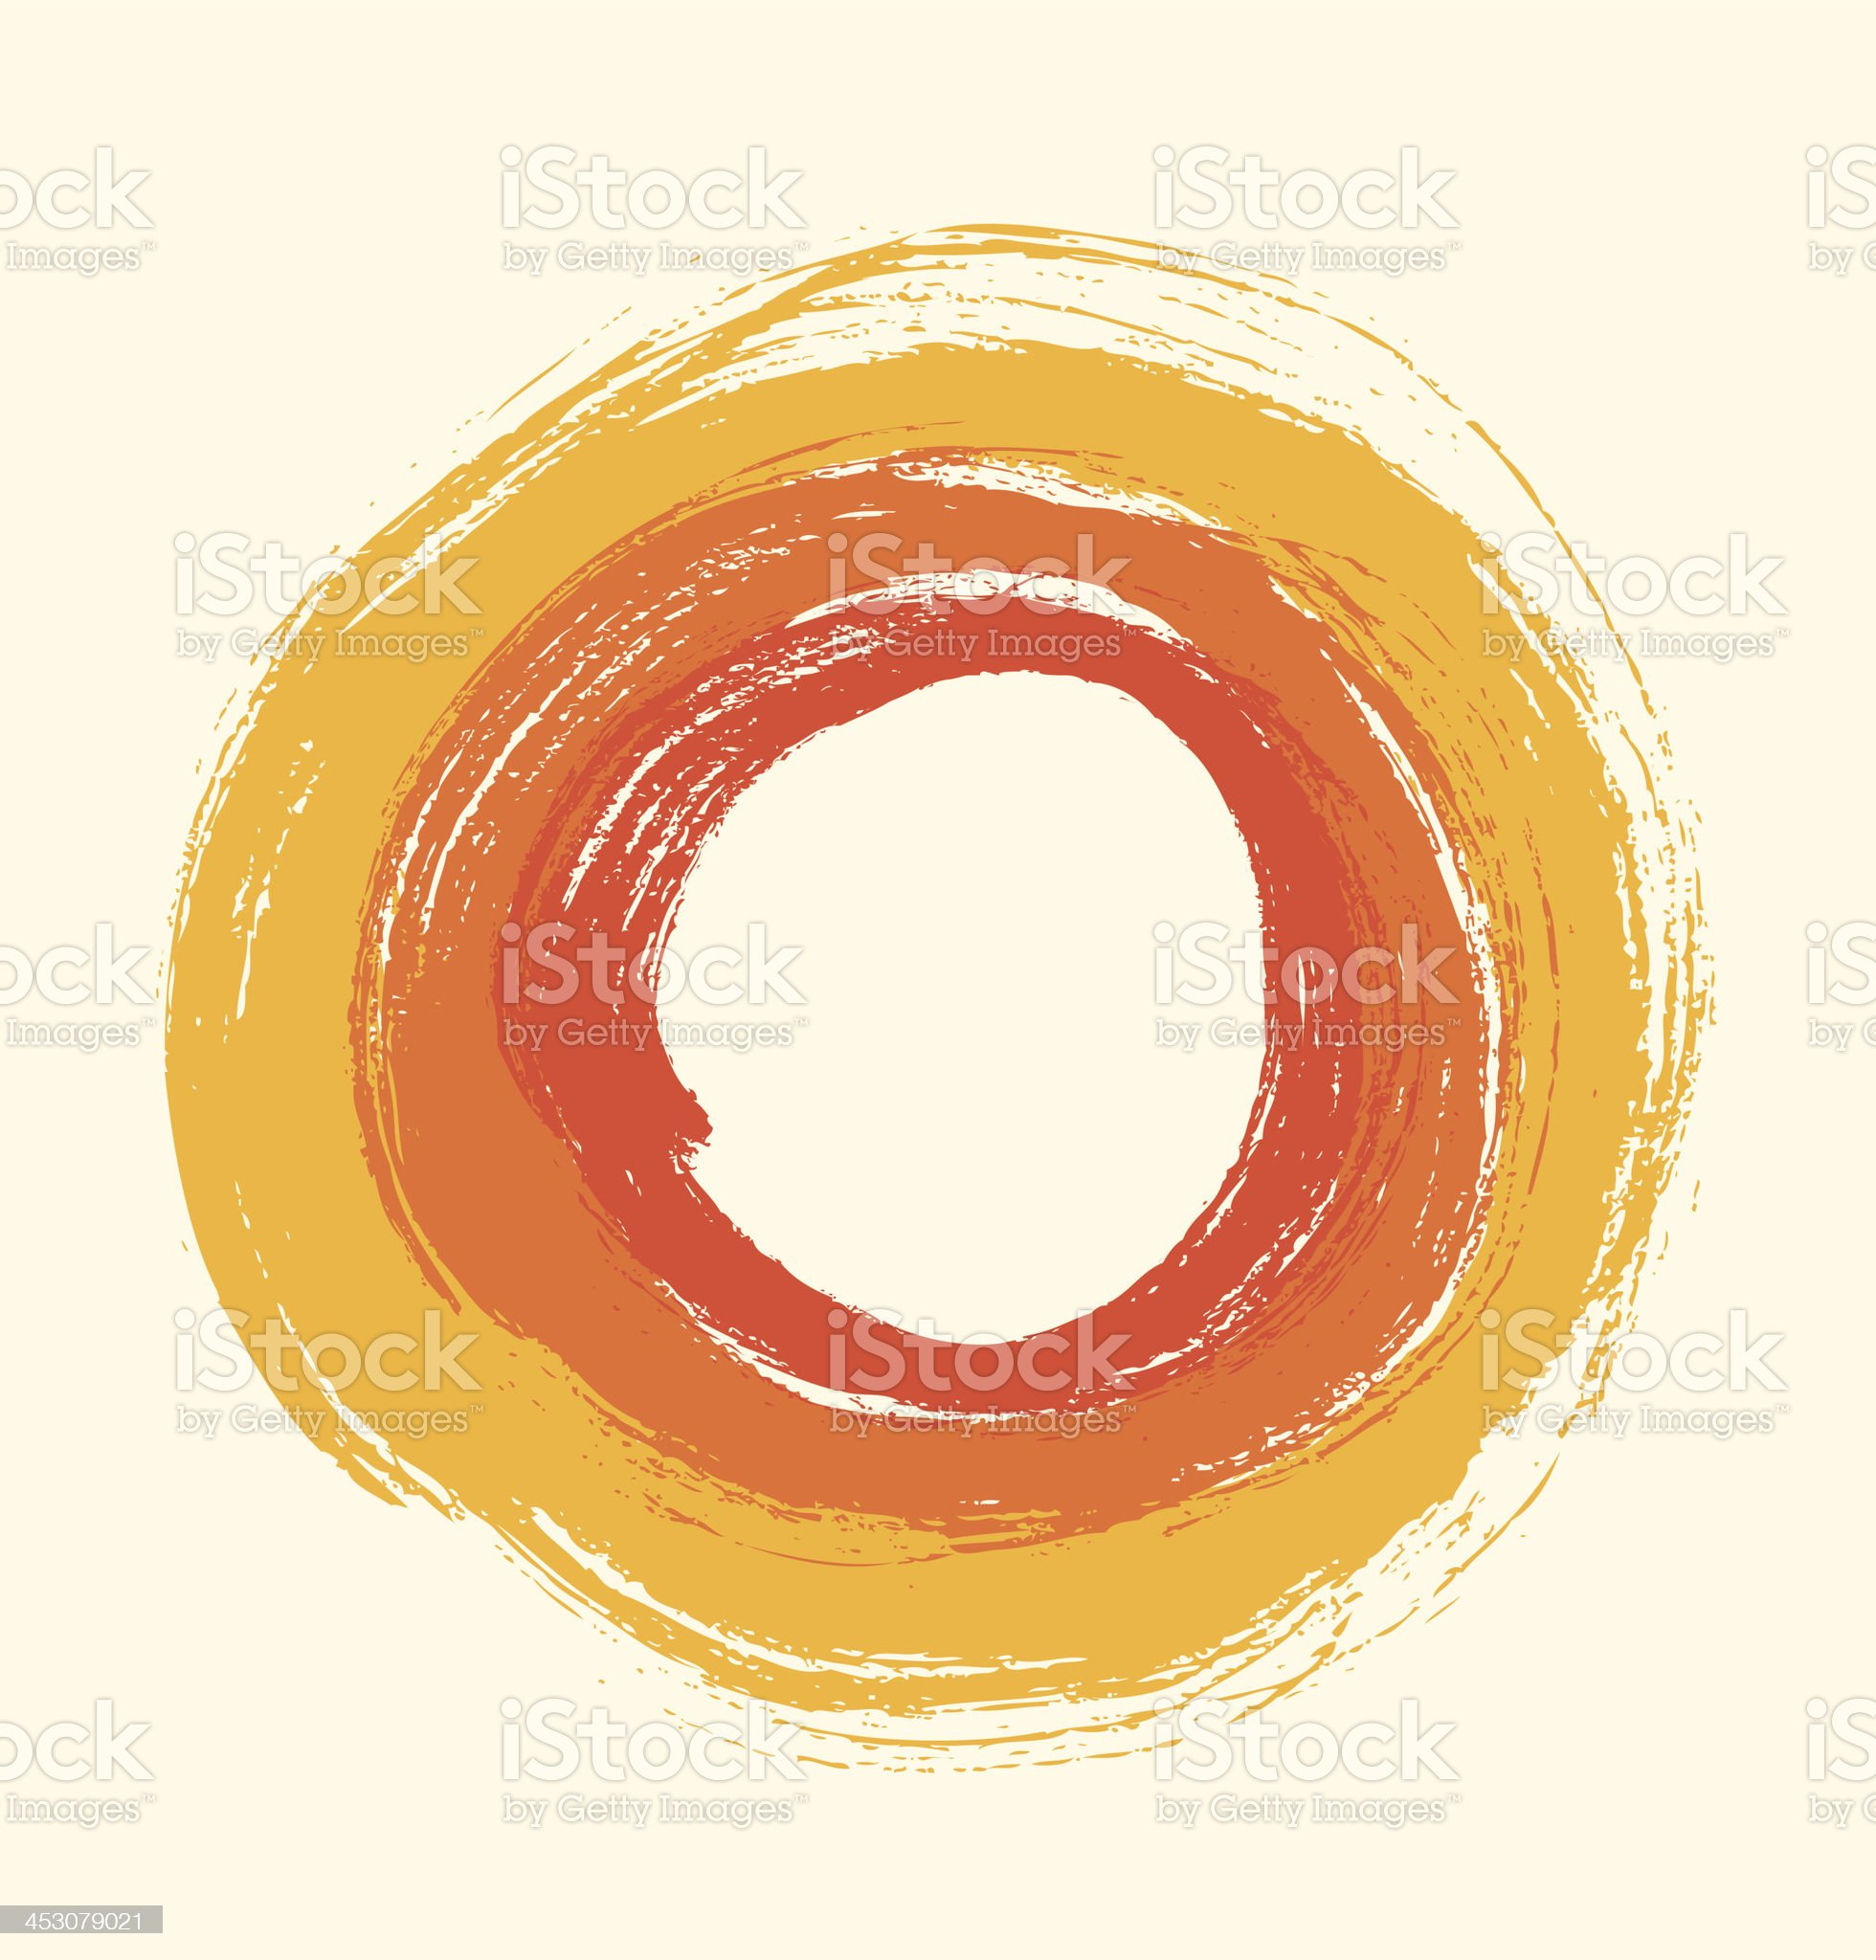 Artistic background  Drawn rings royalty-free stock vector art